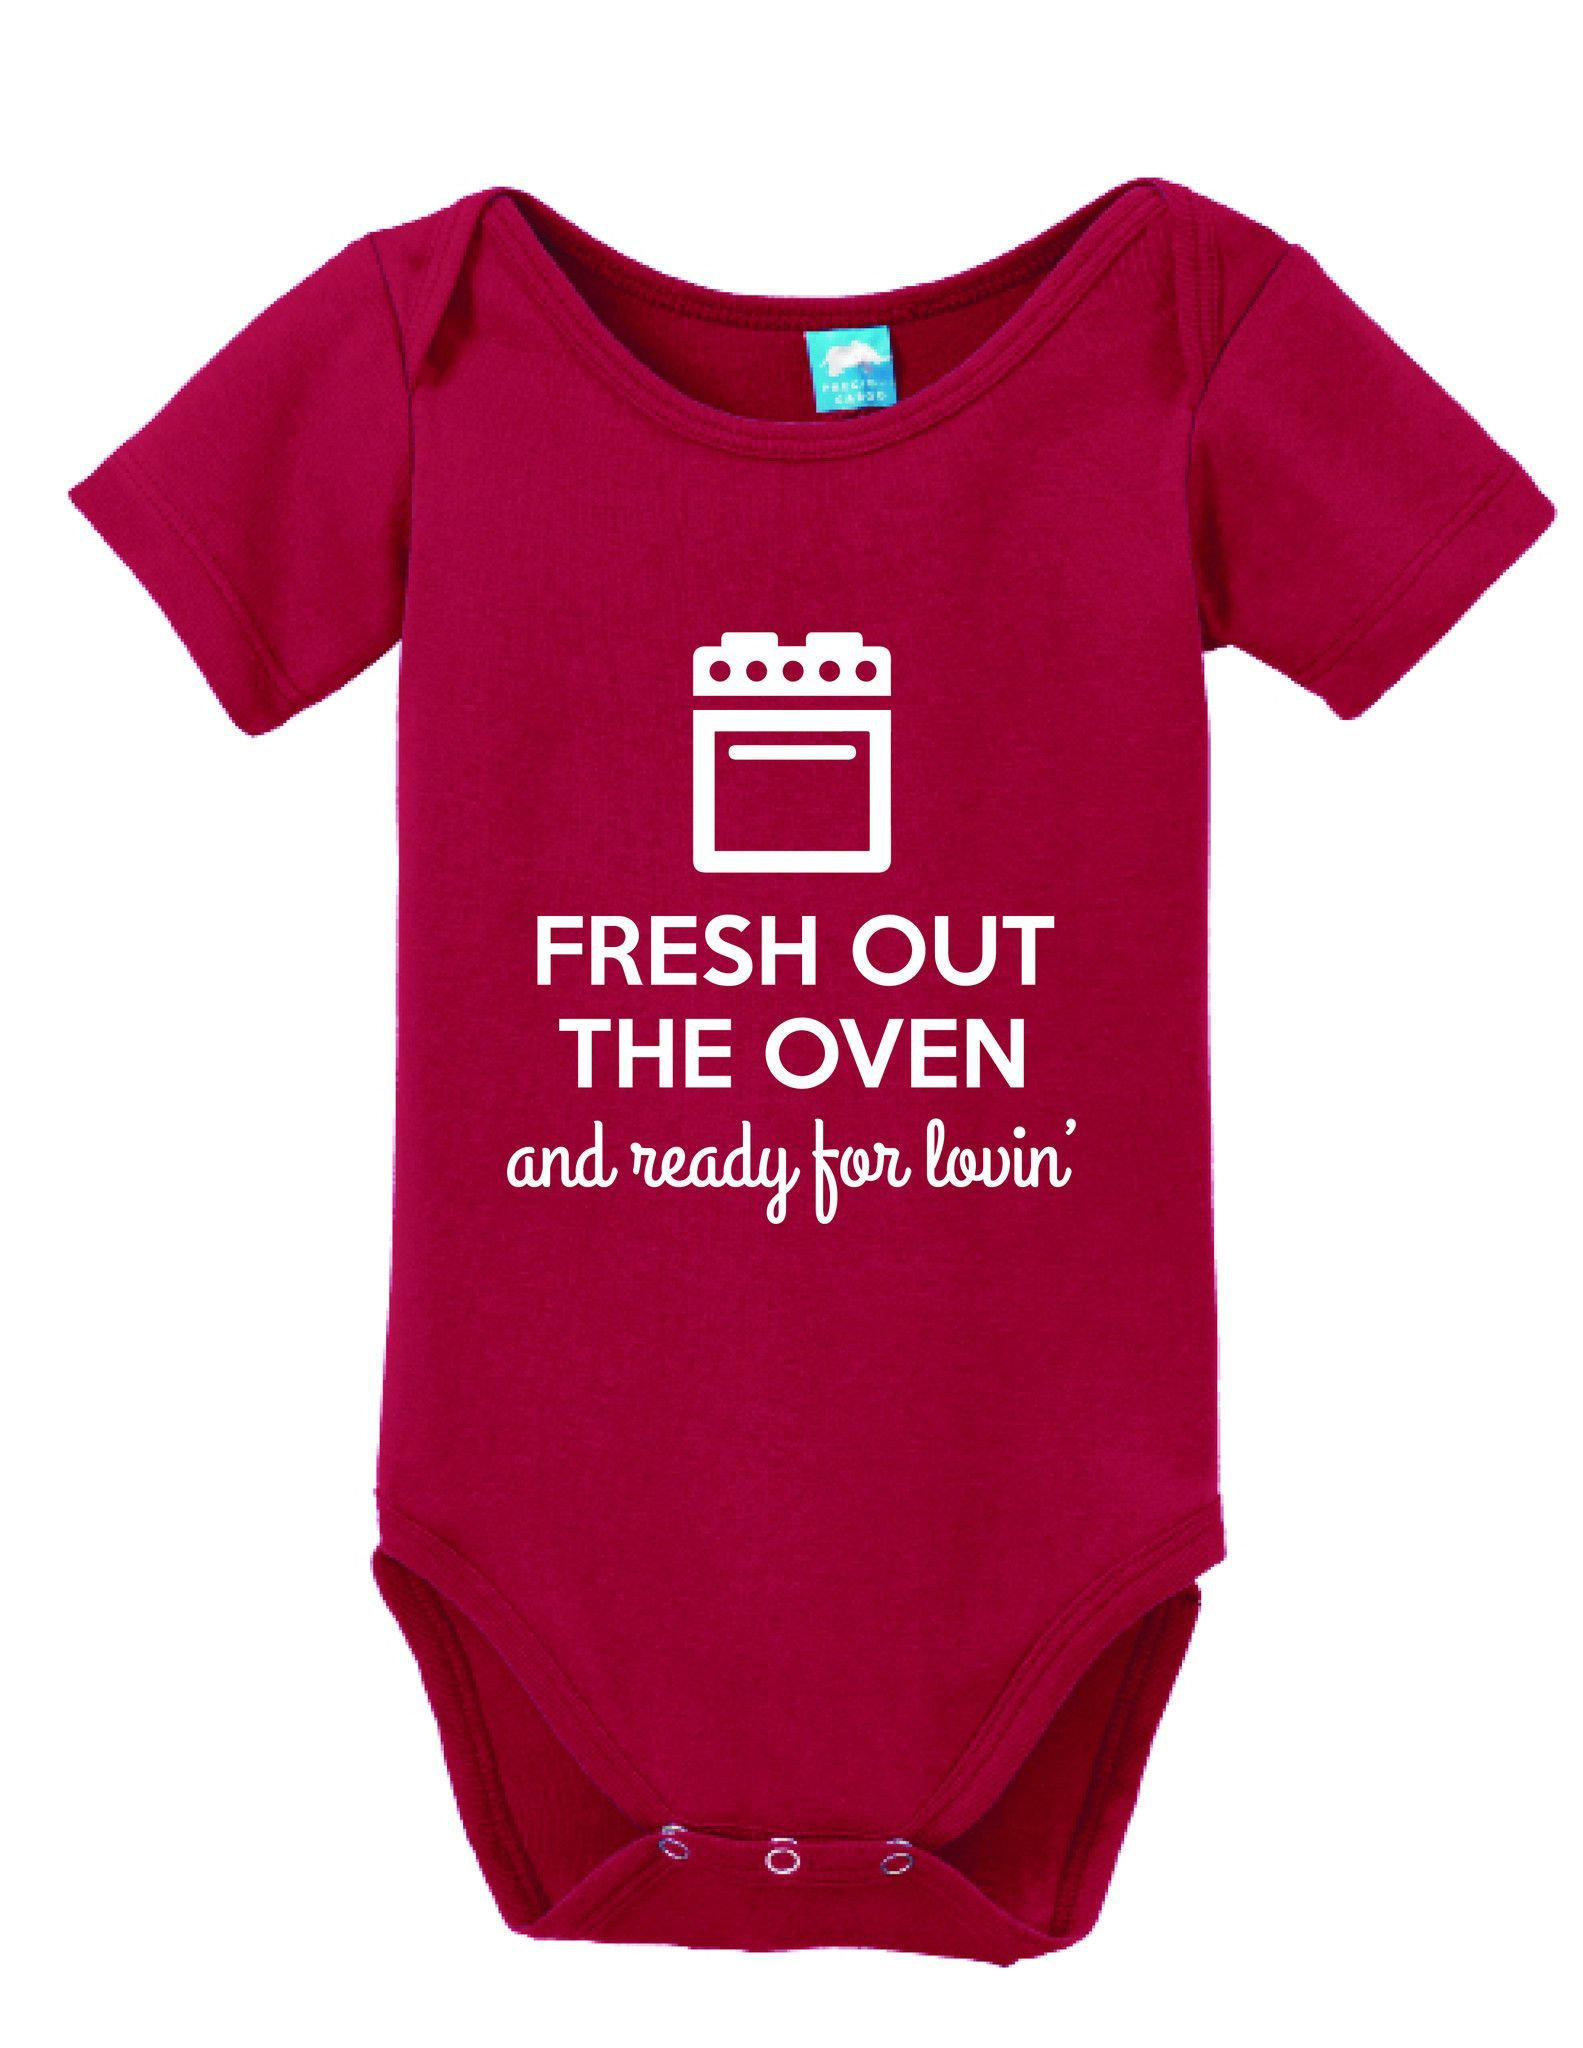 c81cae13b Fresh Out The Oven and Ready for Lovin' Onesie Funny Bodysuit Baby Romper